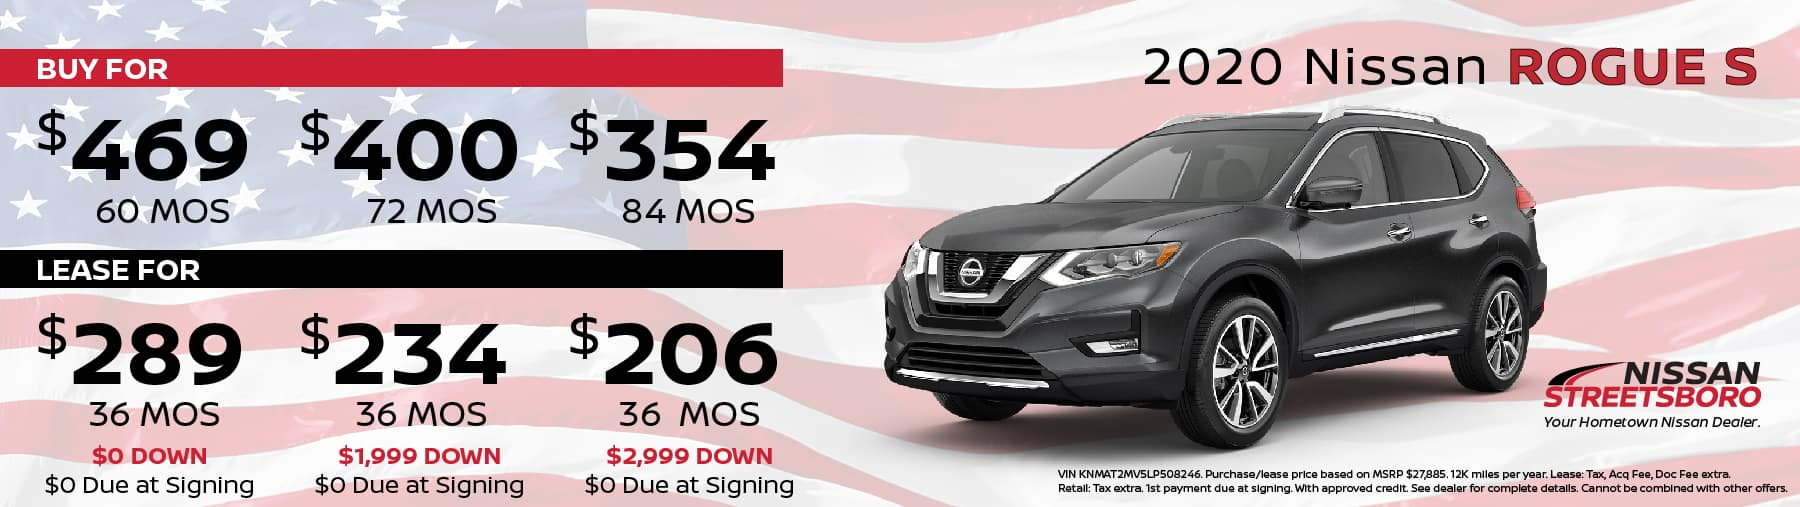 2020 Nissan Rogue Special